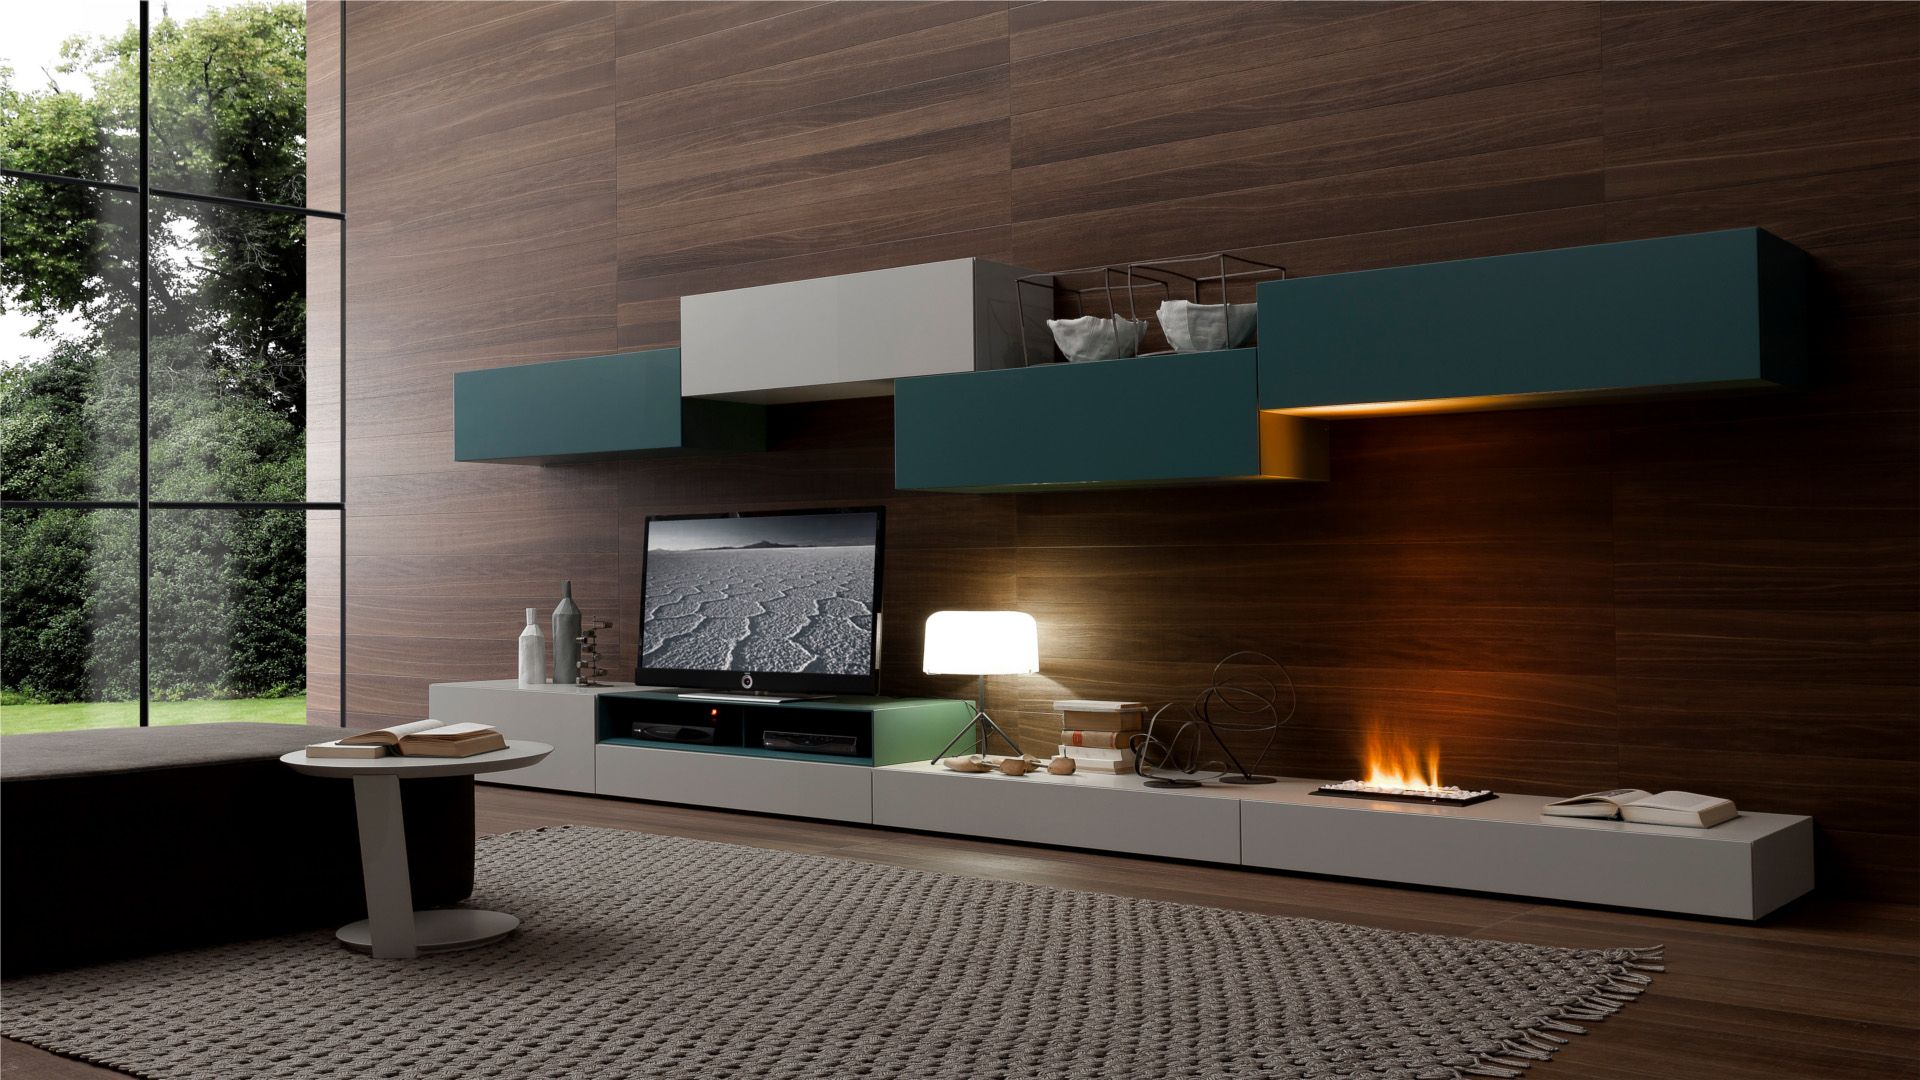 Wall Cabinets Living Room Furniture Modern For Wood Paneling Project Fire Places Pinterest